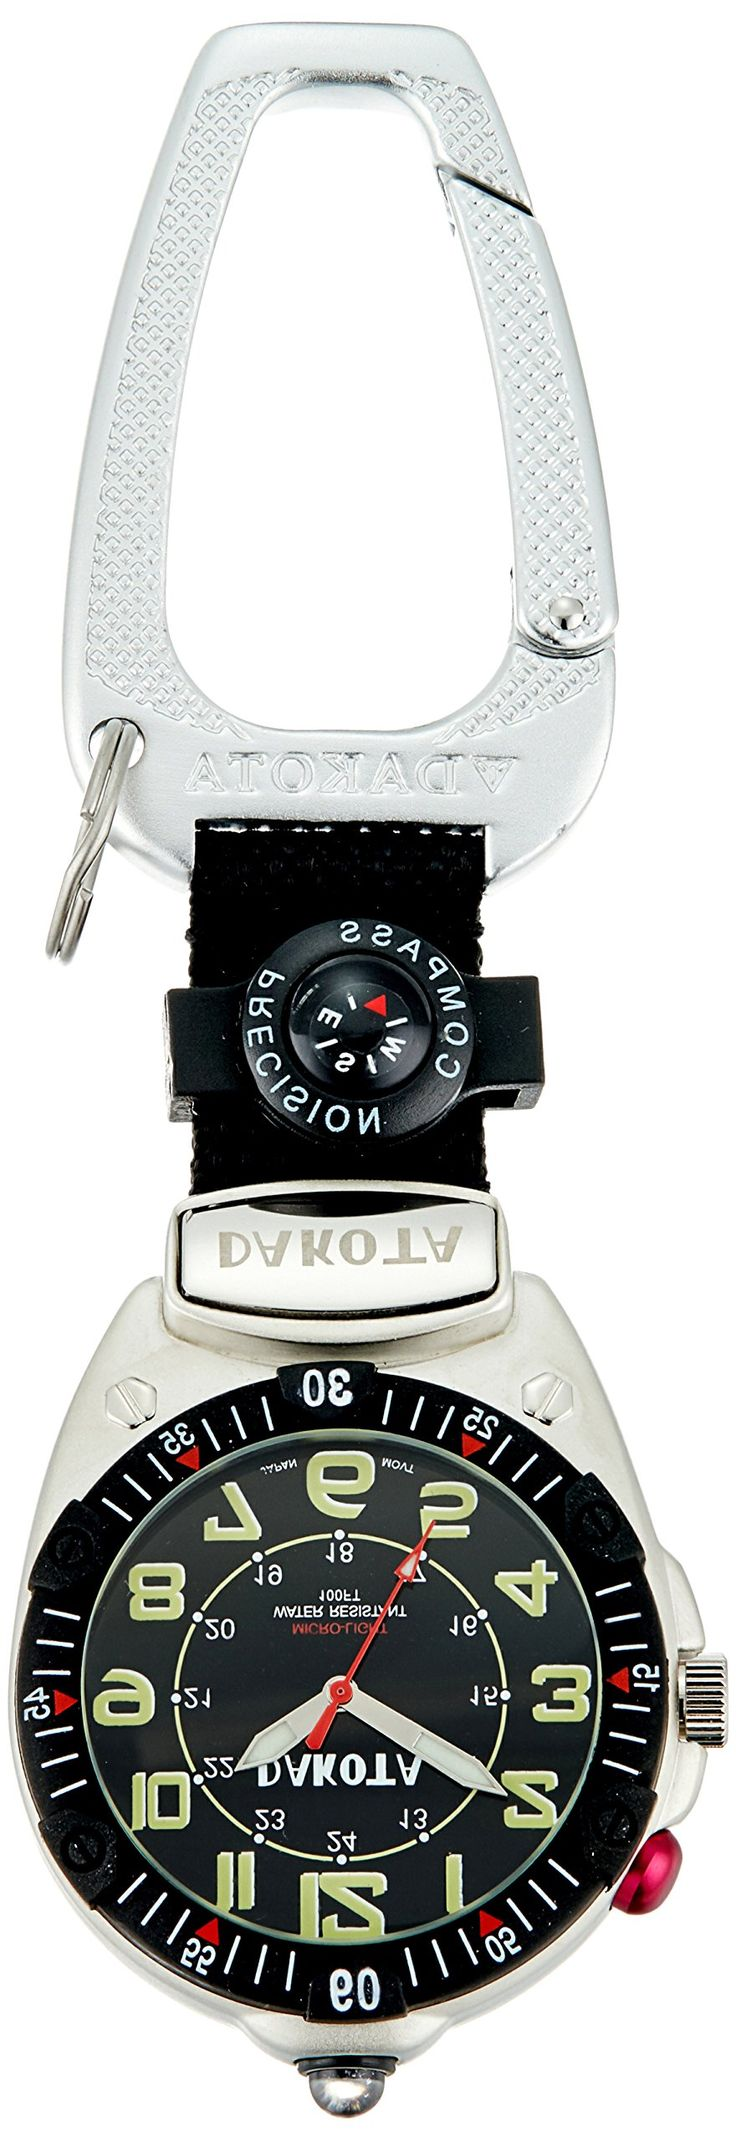 Dakota Watch Company Easy-To-Read Flashlight Clip Watch, Black. Black military dial with black fob with attached compass. 100 feet water resistant. Miyota movement. Luminescent hands. Ultra bright LED microlight.